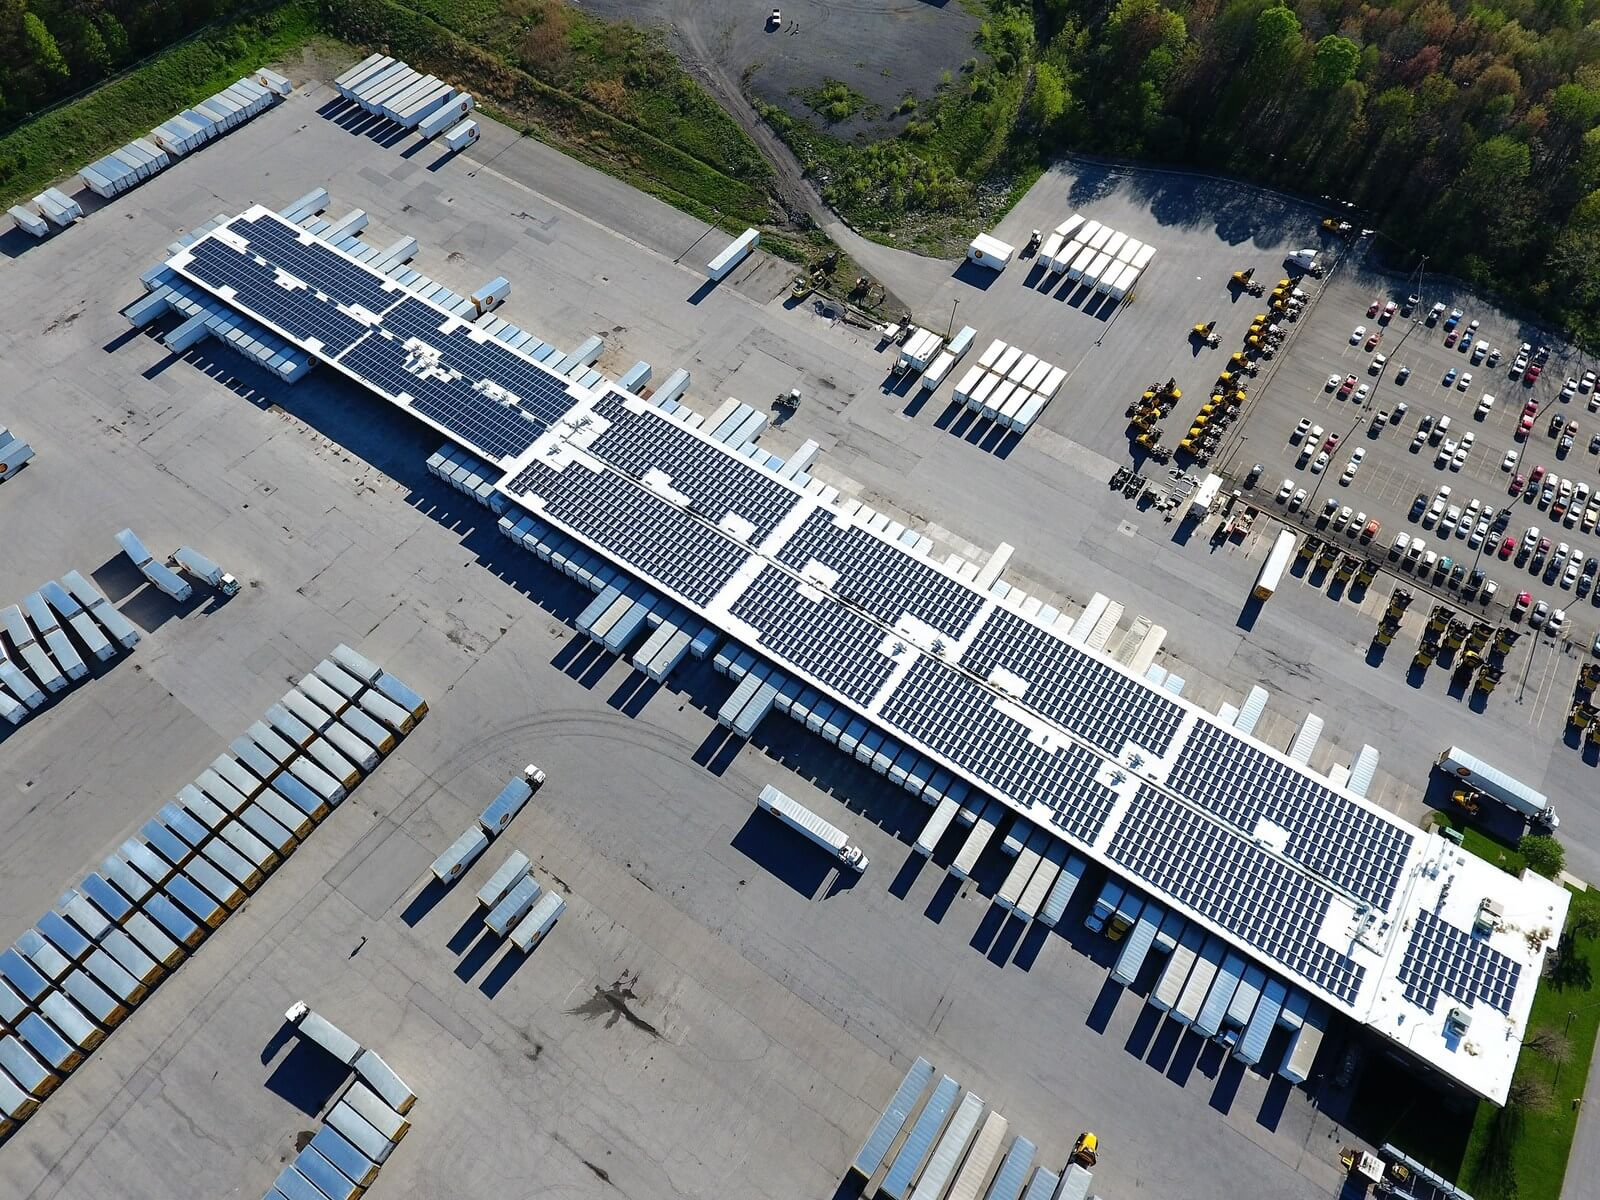 Estes Trucking Company Adds Rooftop Solar At Pa. Terminal